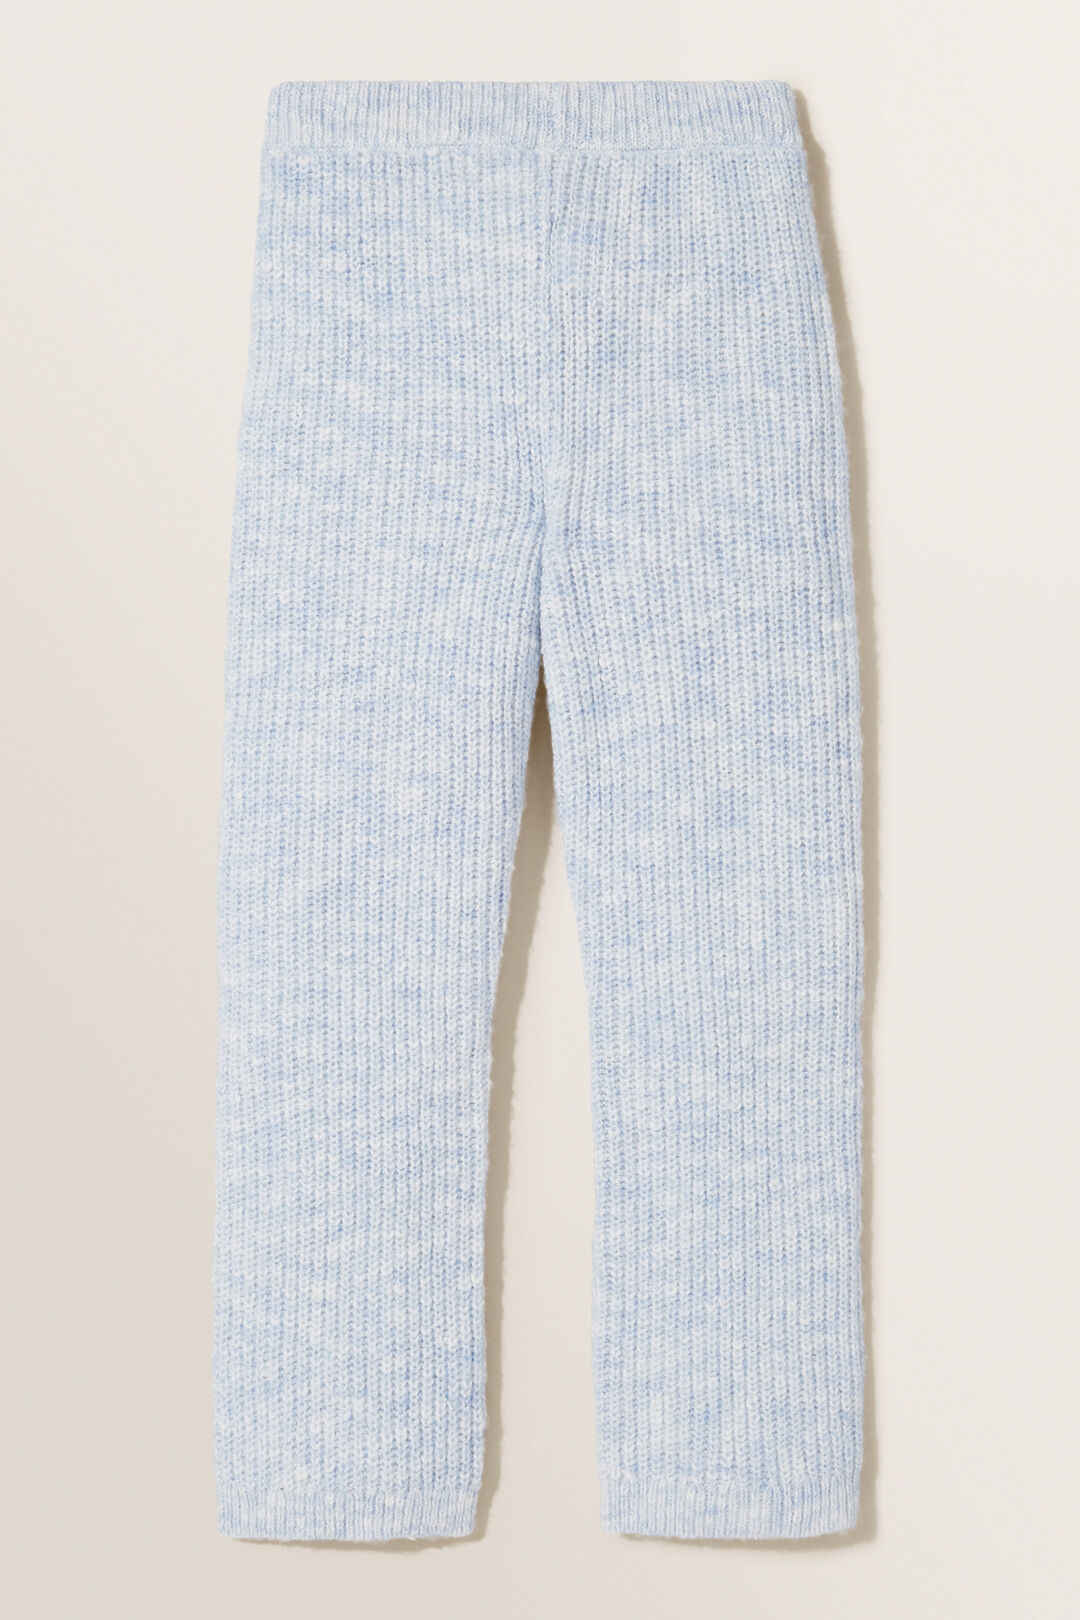 Speckle Knit Trousers  Bluebelle Marle  hi-res